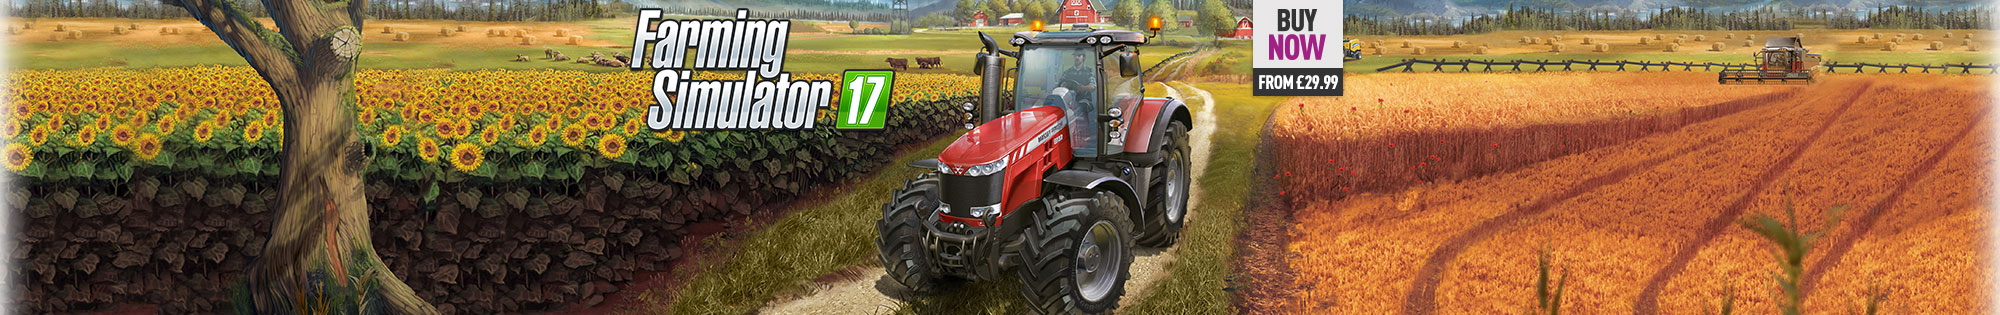 Farming Simulator 17 for Xbox One, PS4 and PC  - Buy Now at GAME.co.uk!